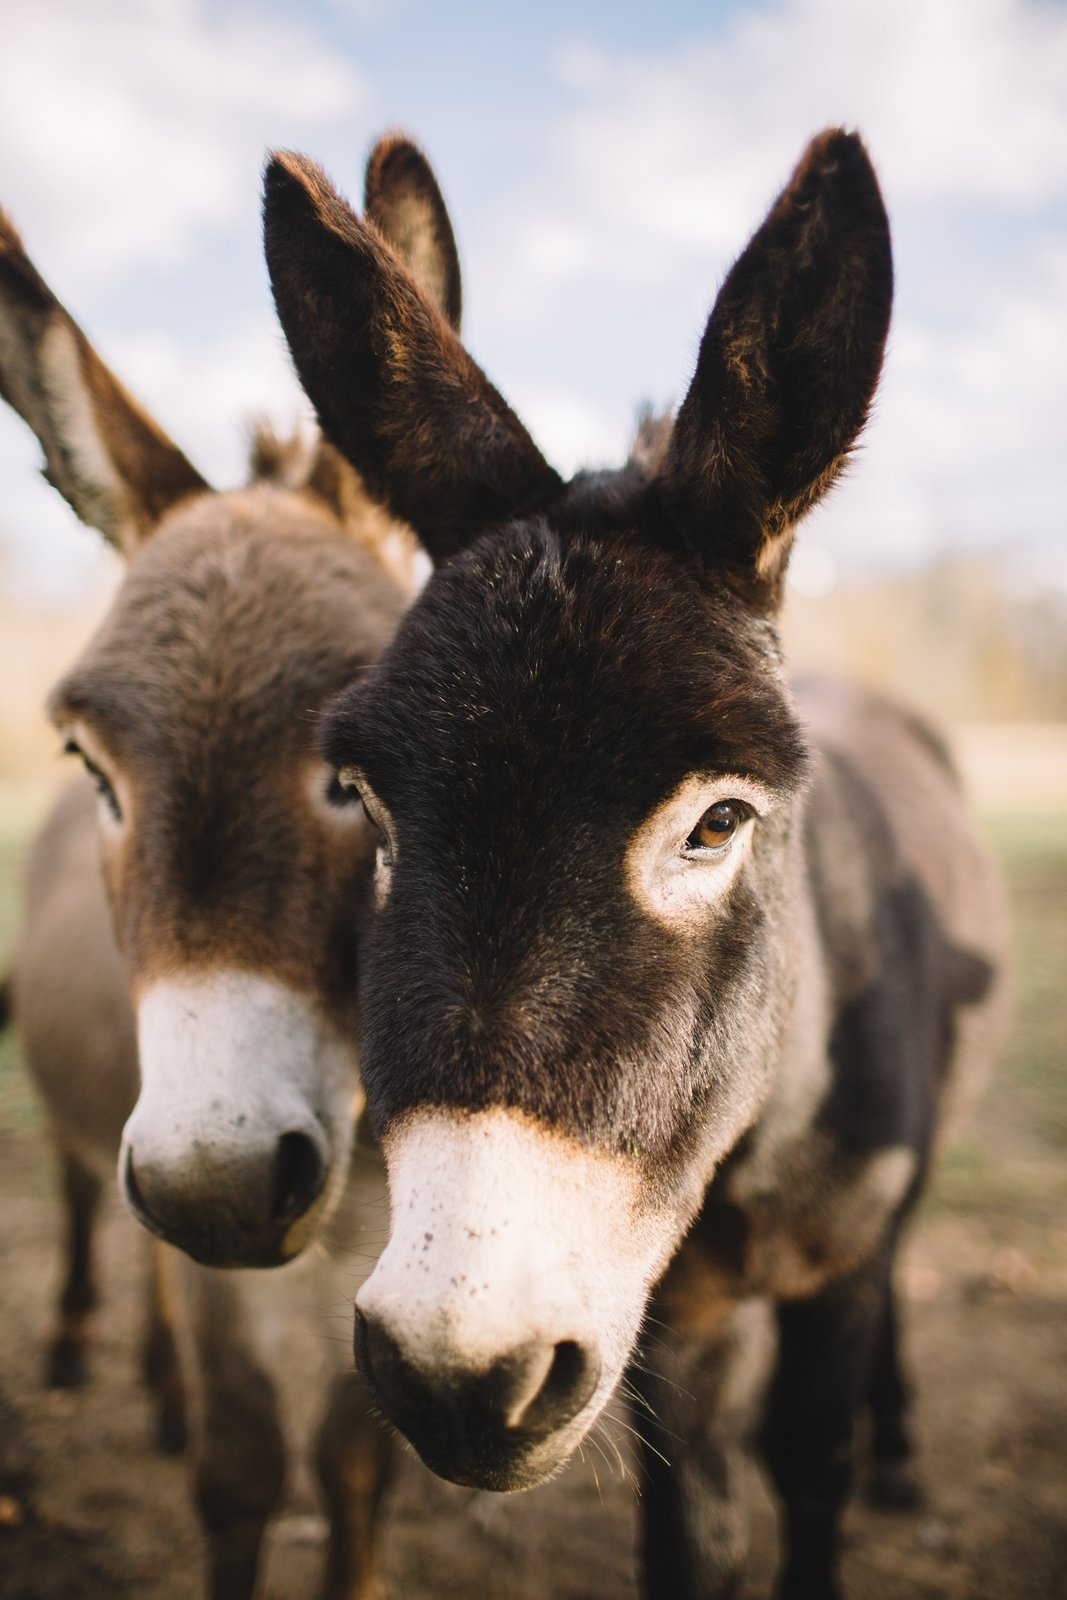 Miniature donkeys and alpacas roam the land freely.  Photo 6 of 8 in A Texas Camping Spot Complete With Yurts and Miniature Donkeys